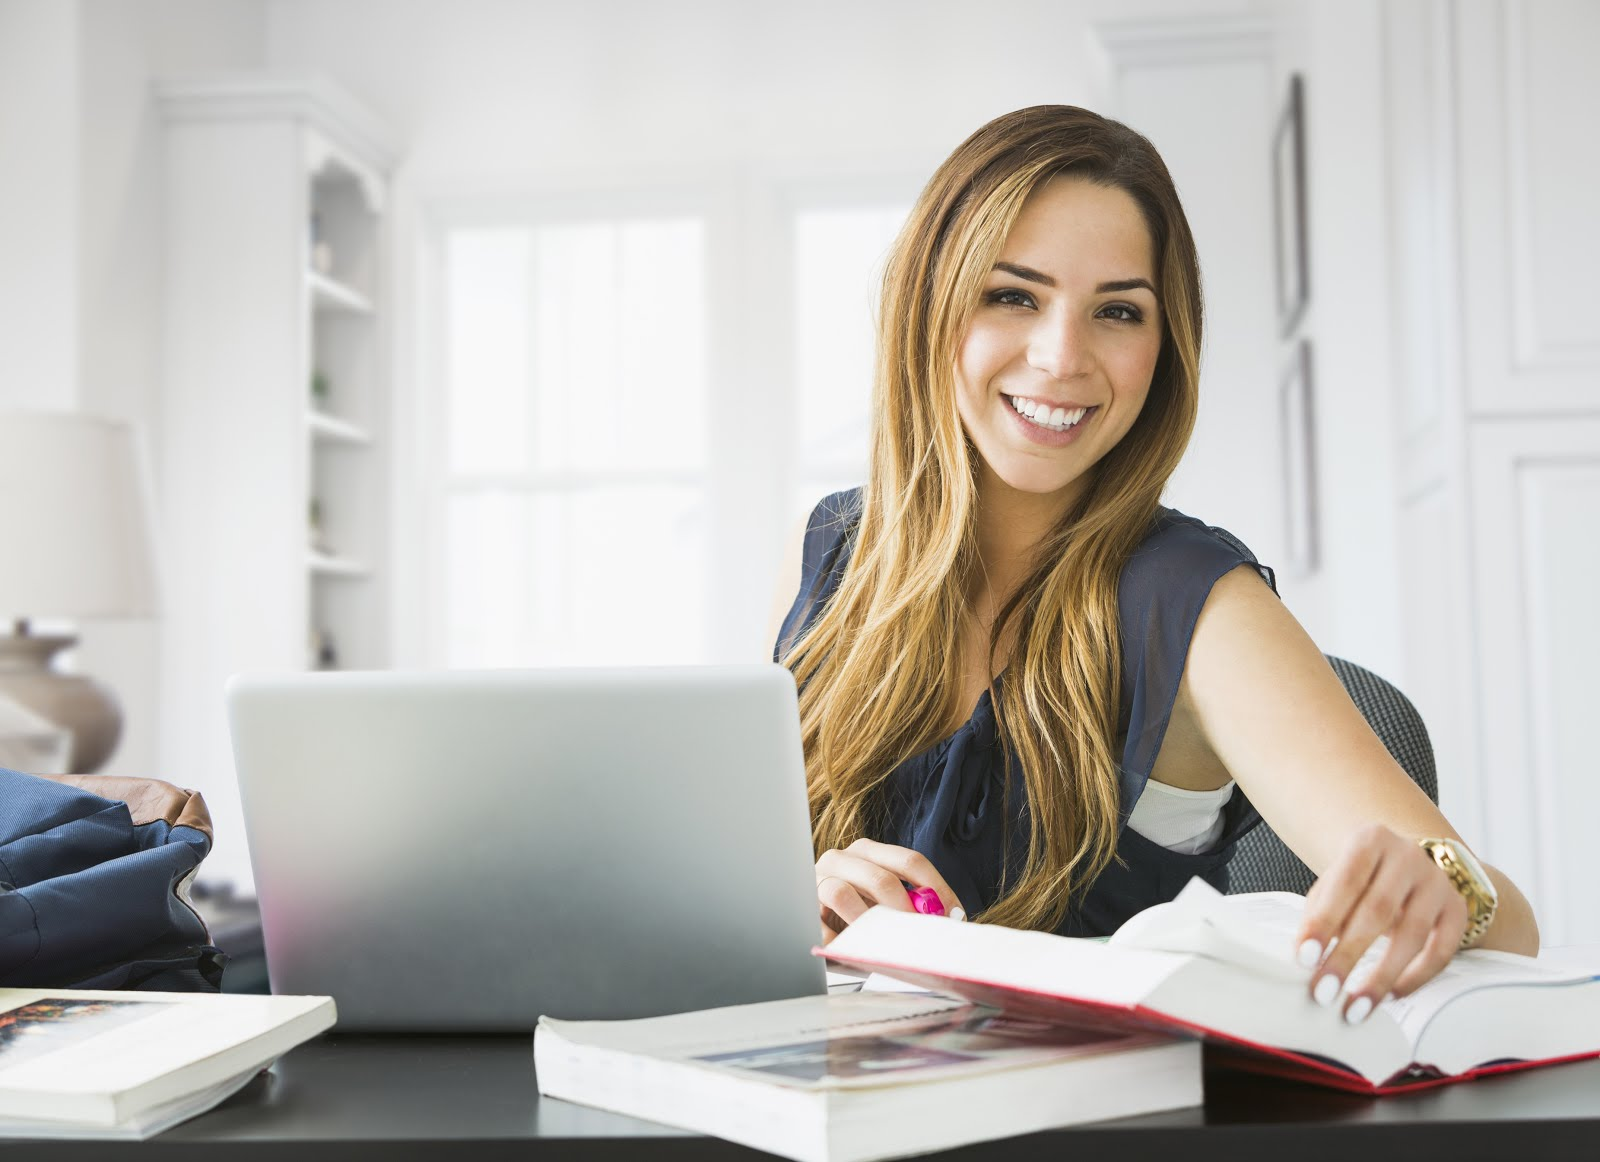 online university homework help Online homework help university homework help is a company that helps students achieve the best possible results that they deserve.